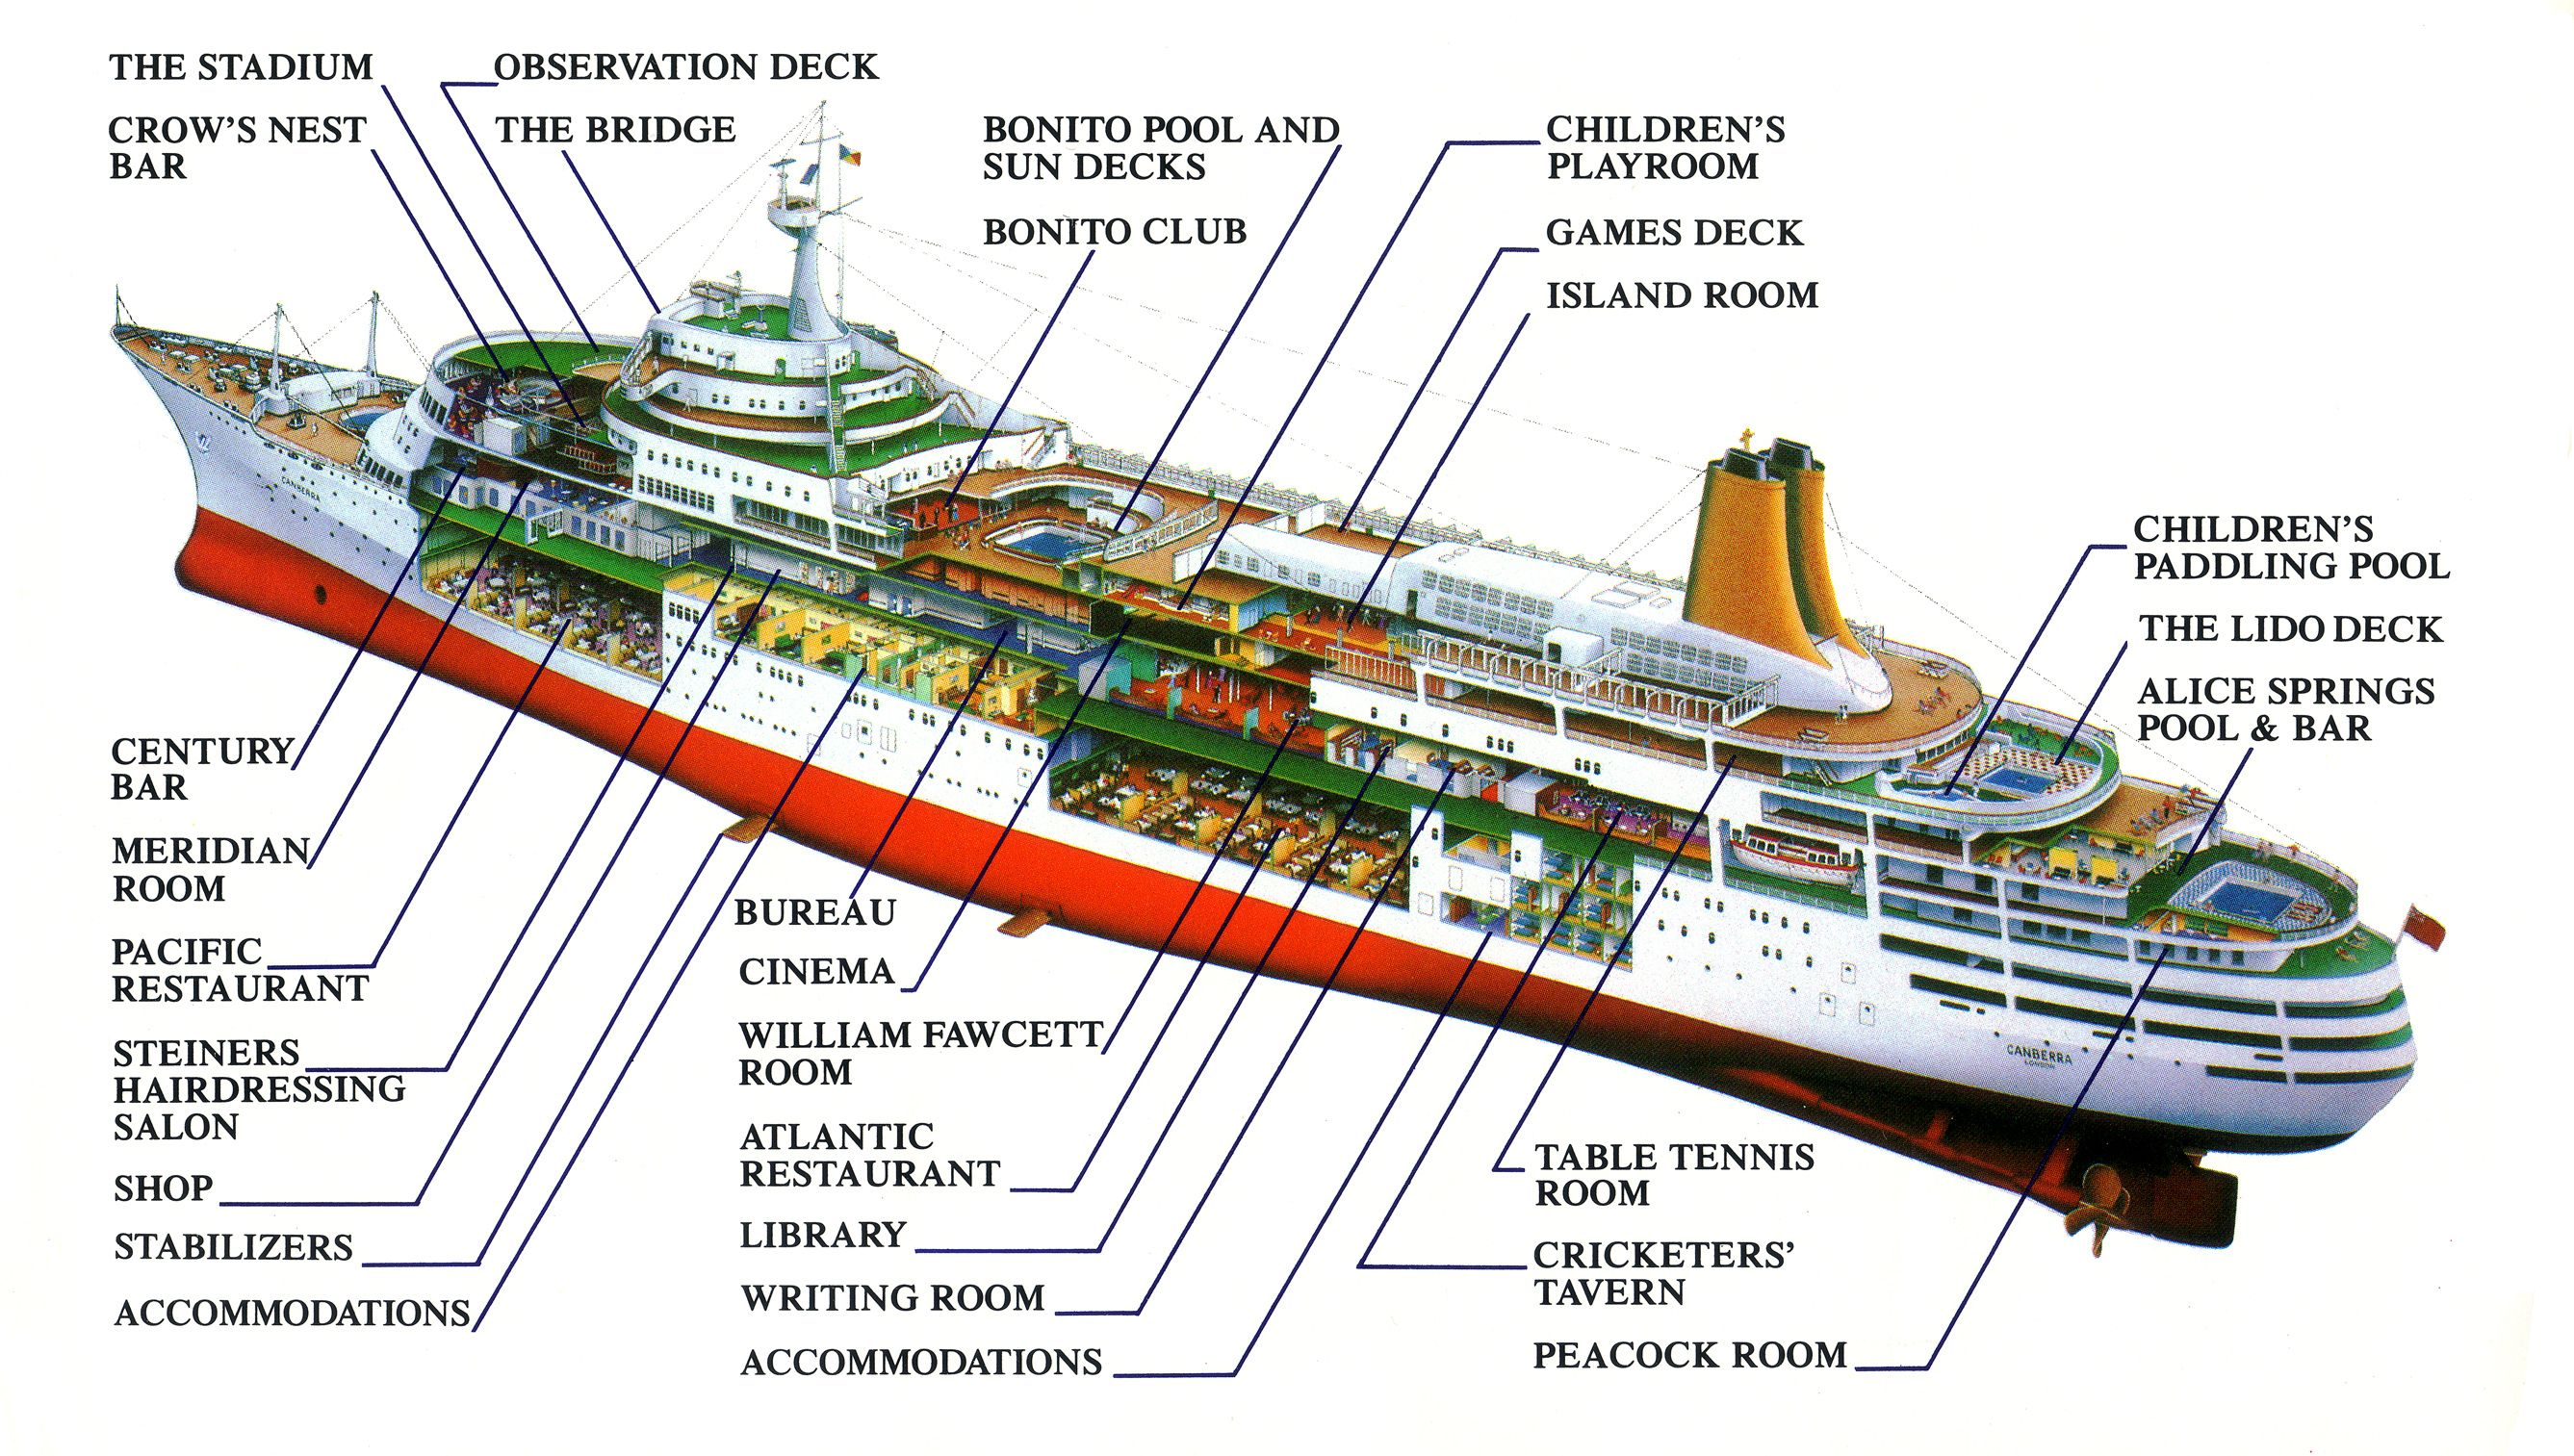 Cruise Ship Diagram 2007 Nissan Maxima Engine Of Wiring Pin By Michael Sommers On Ships And Yachts In 2019 Pinterestdiagram A Square Rigged Man